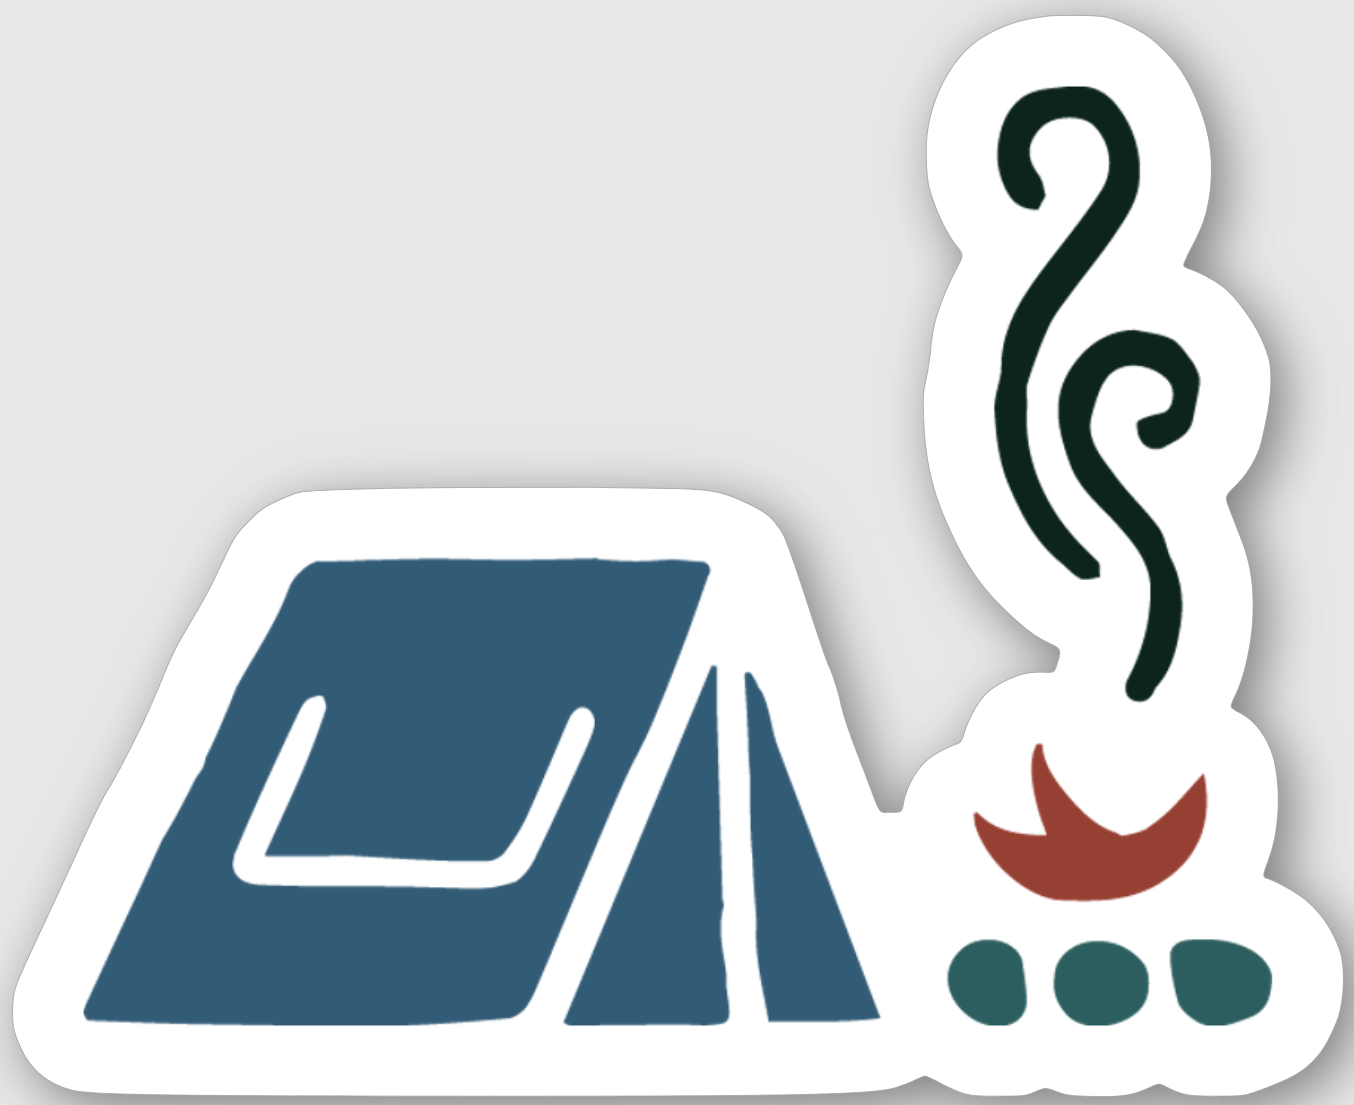 Hiker Hunger - Campfire Sticker - Best Hiking Gear!